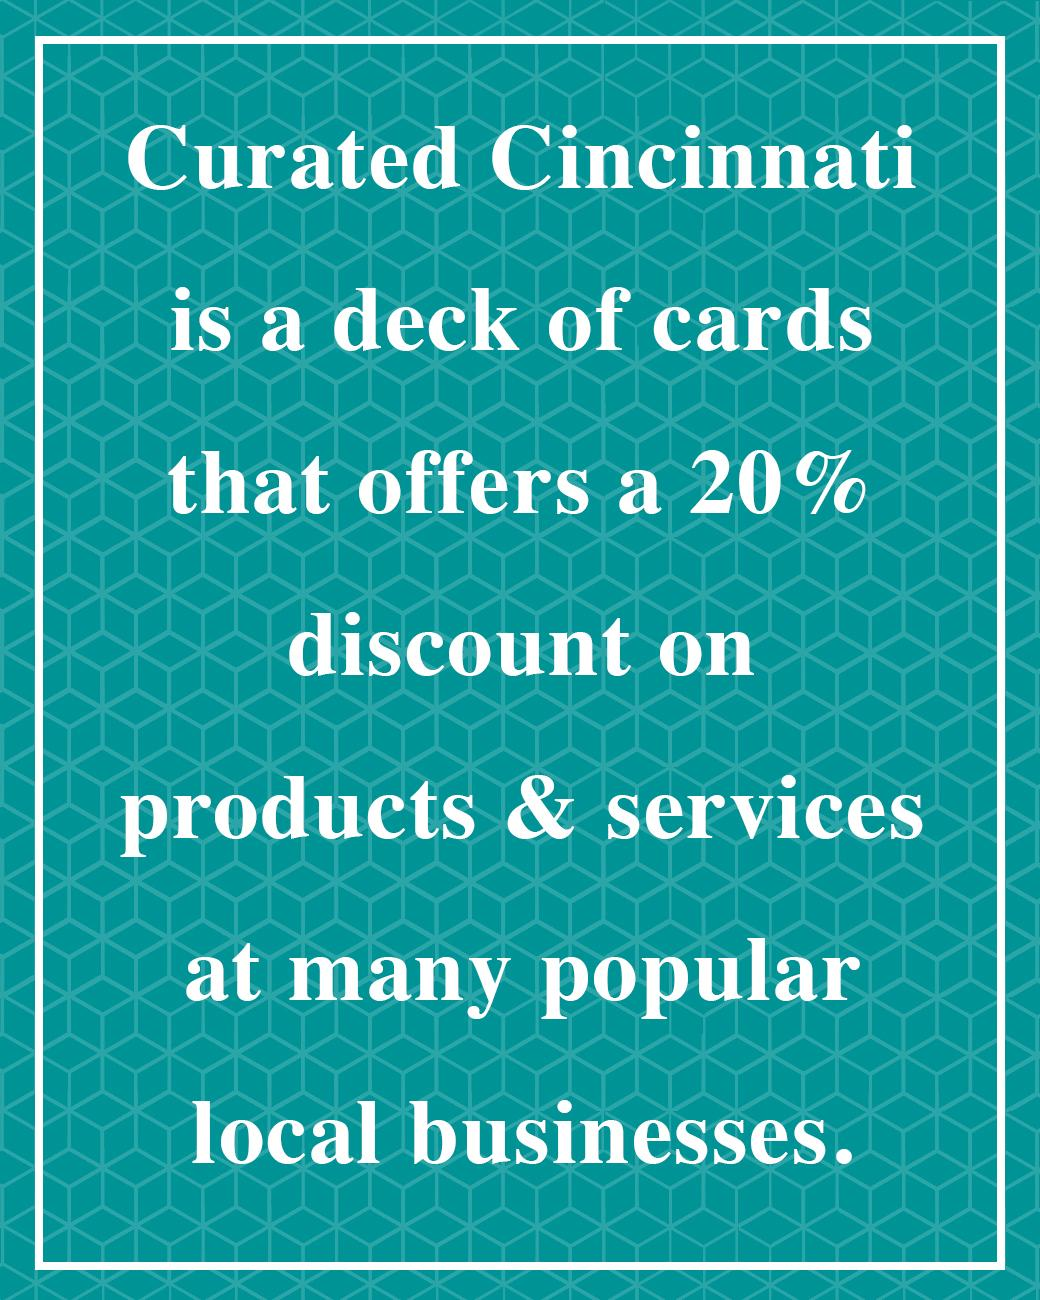 Introducing: Curated Cincinnati!